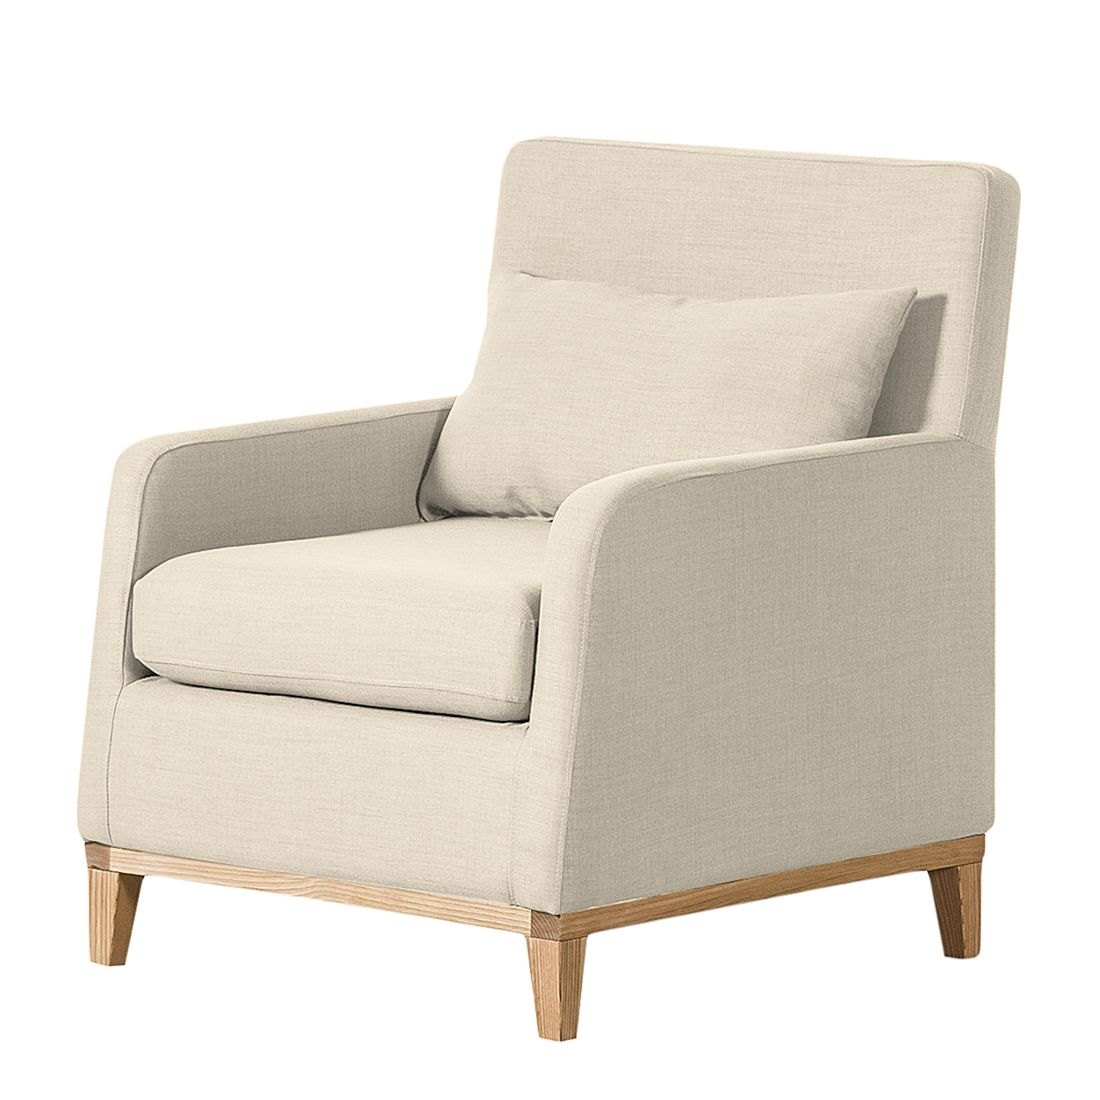 Sessel Blomma - Webstoff Beige - Gestell: Eichefarbig, Jack and Alice